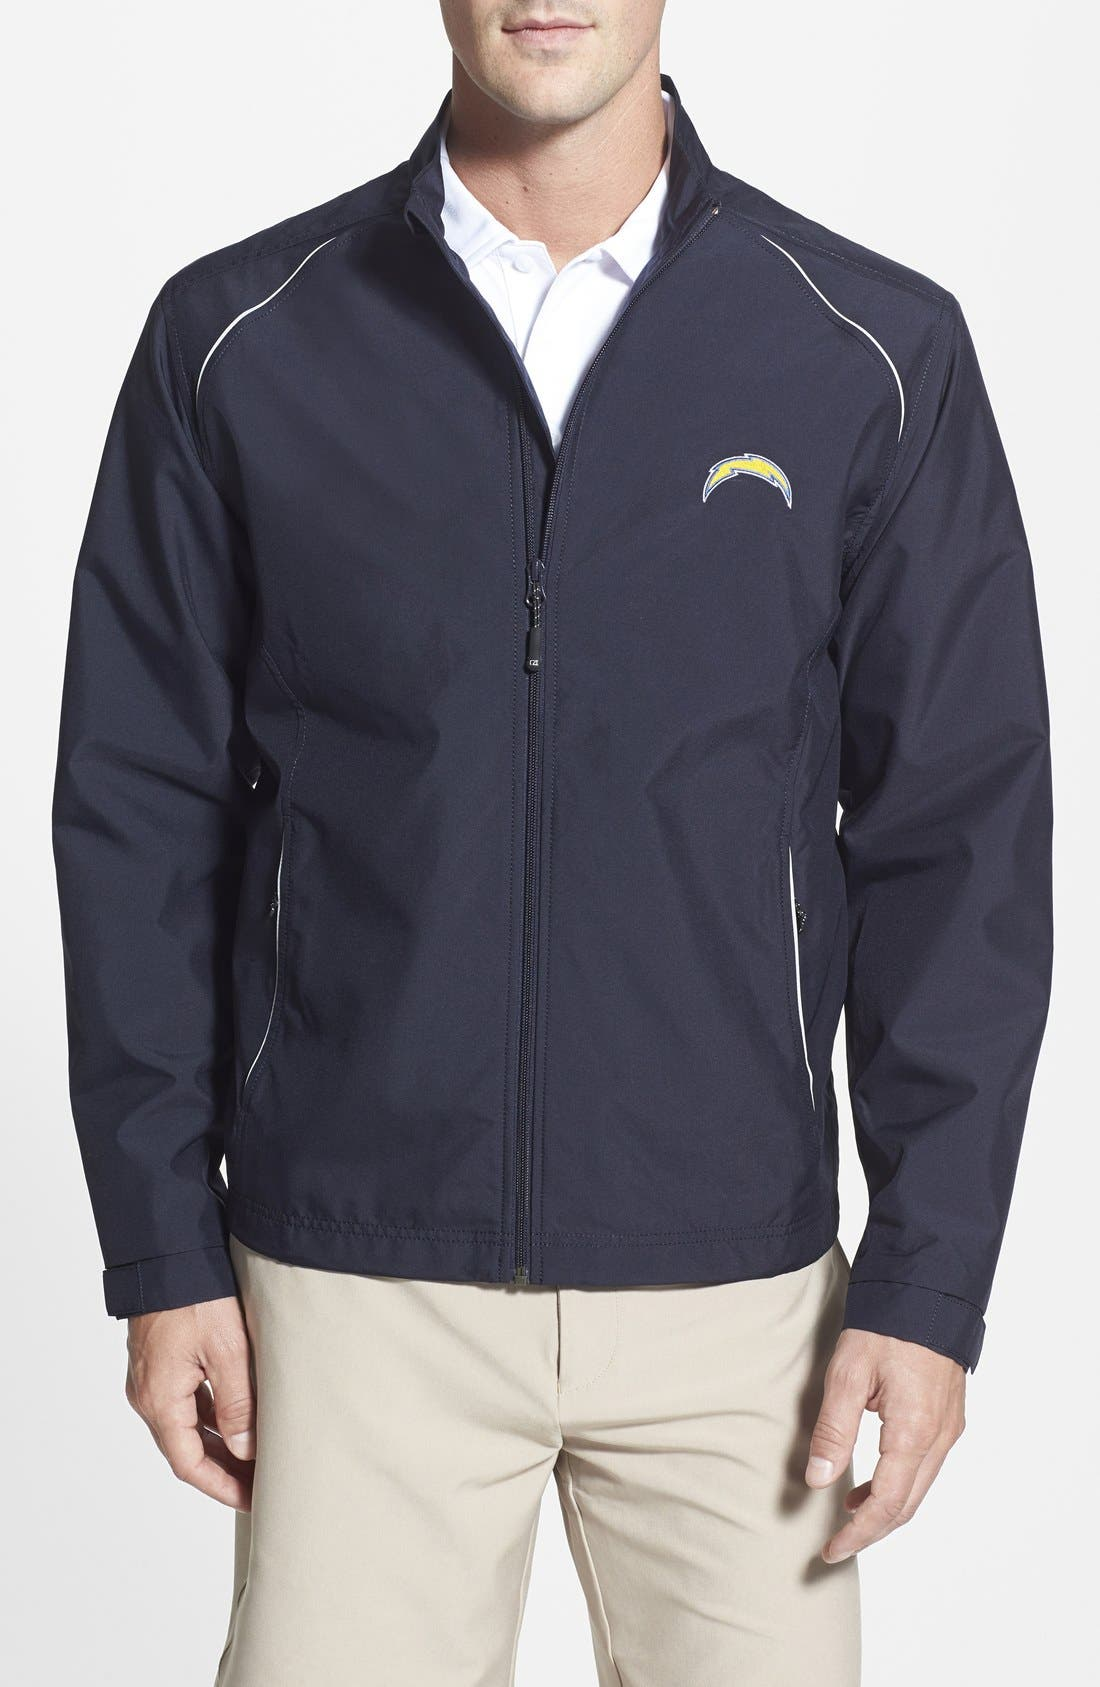 Main Image - Cutter & Buck San Diego Chargers - Beacon WeatherTec Wind & Water Resistant Jacket